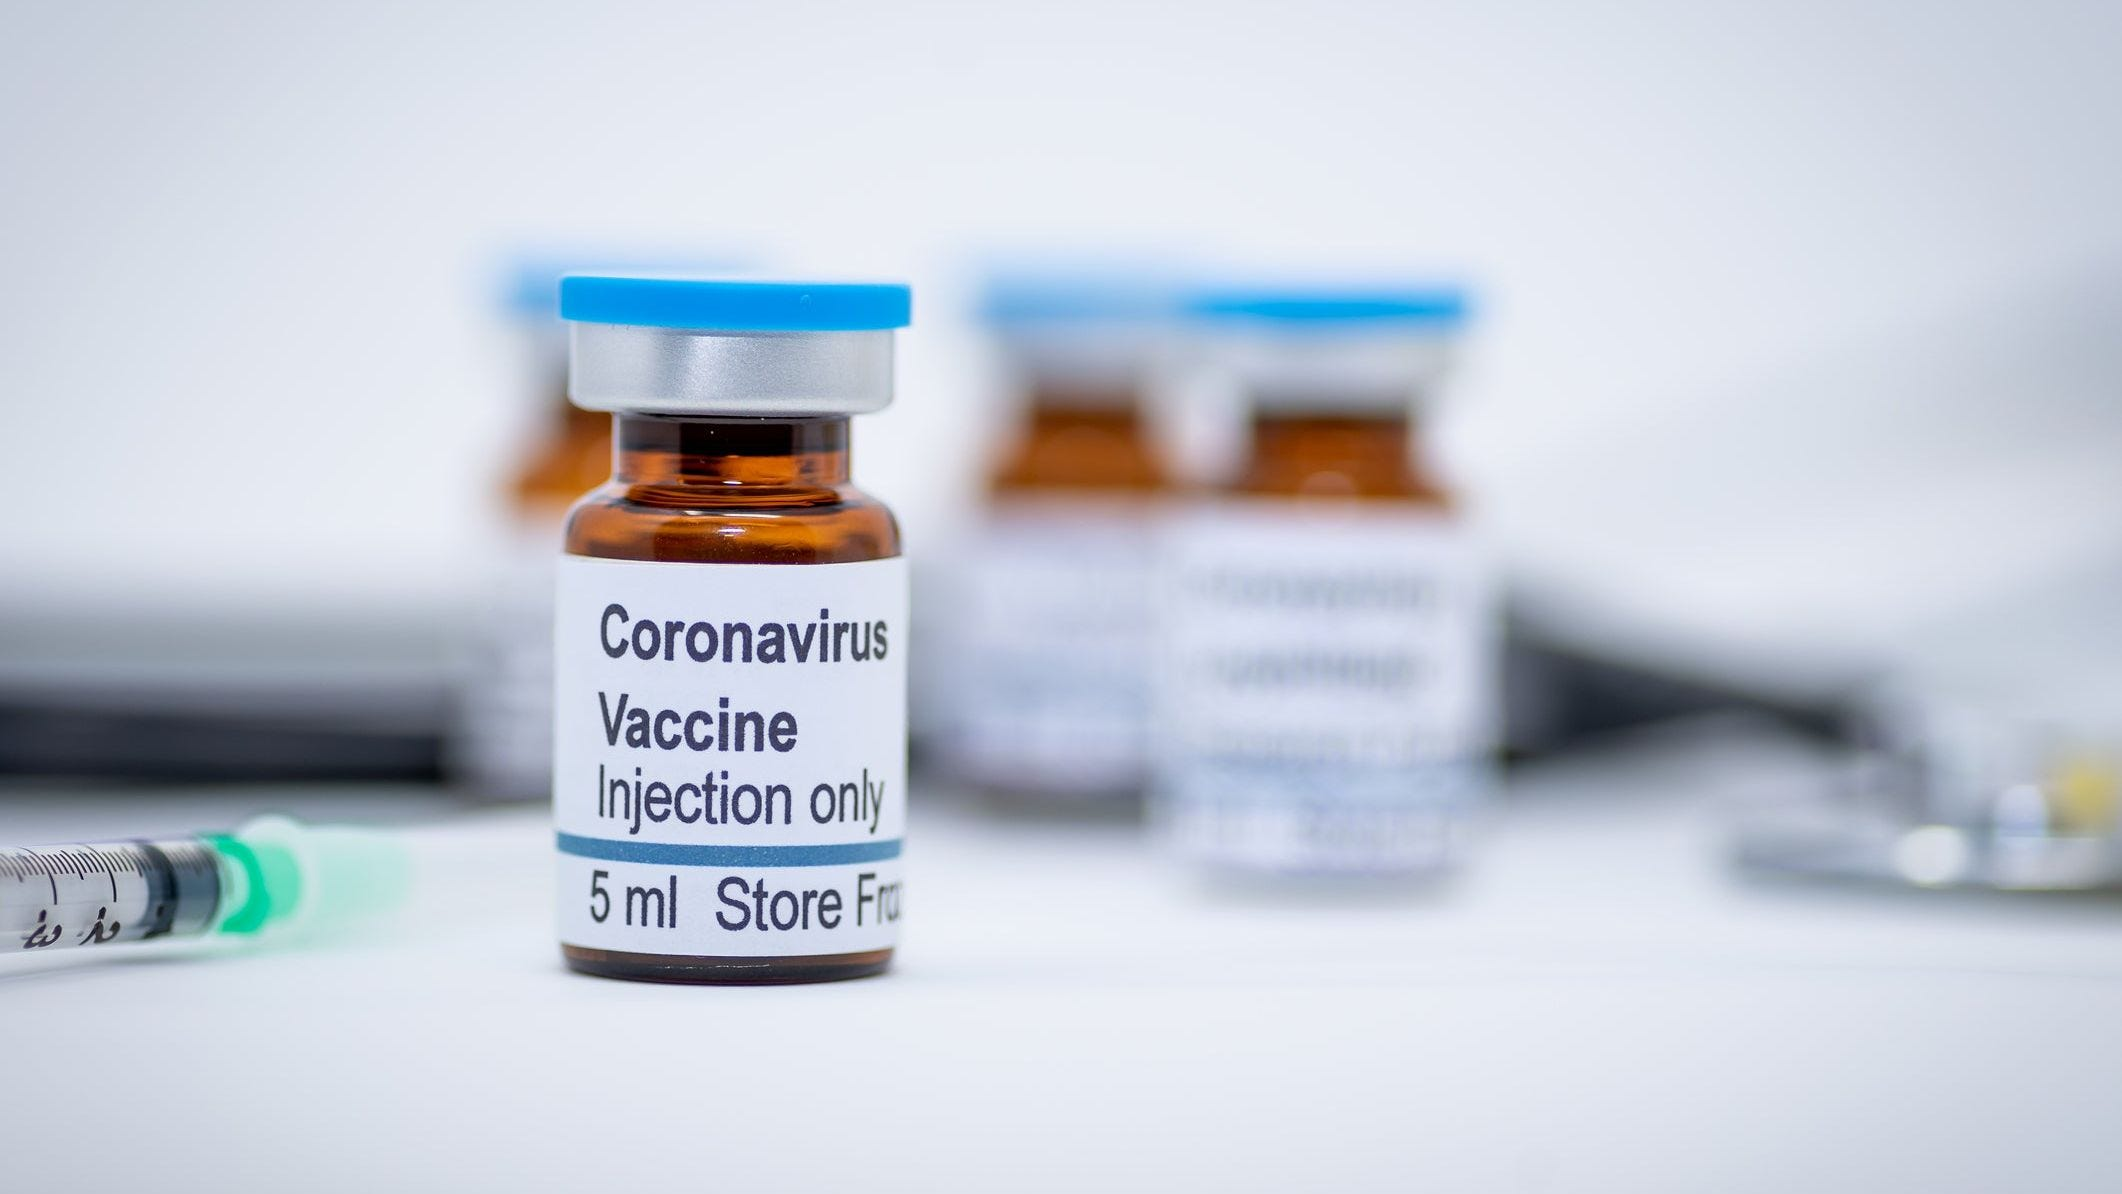 Researchers declared a potential antibody against SARS-CoV-2, the new coronavirus causing the COVID-19 pandemic